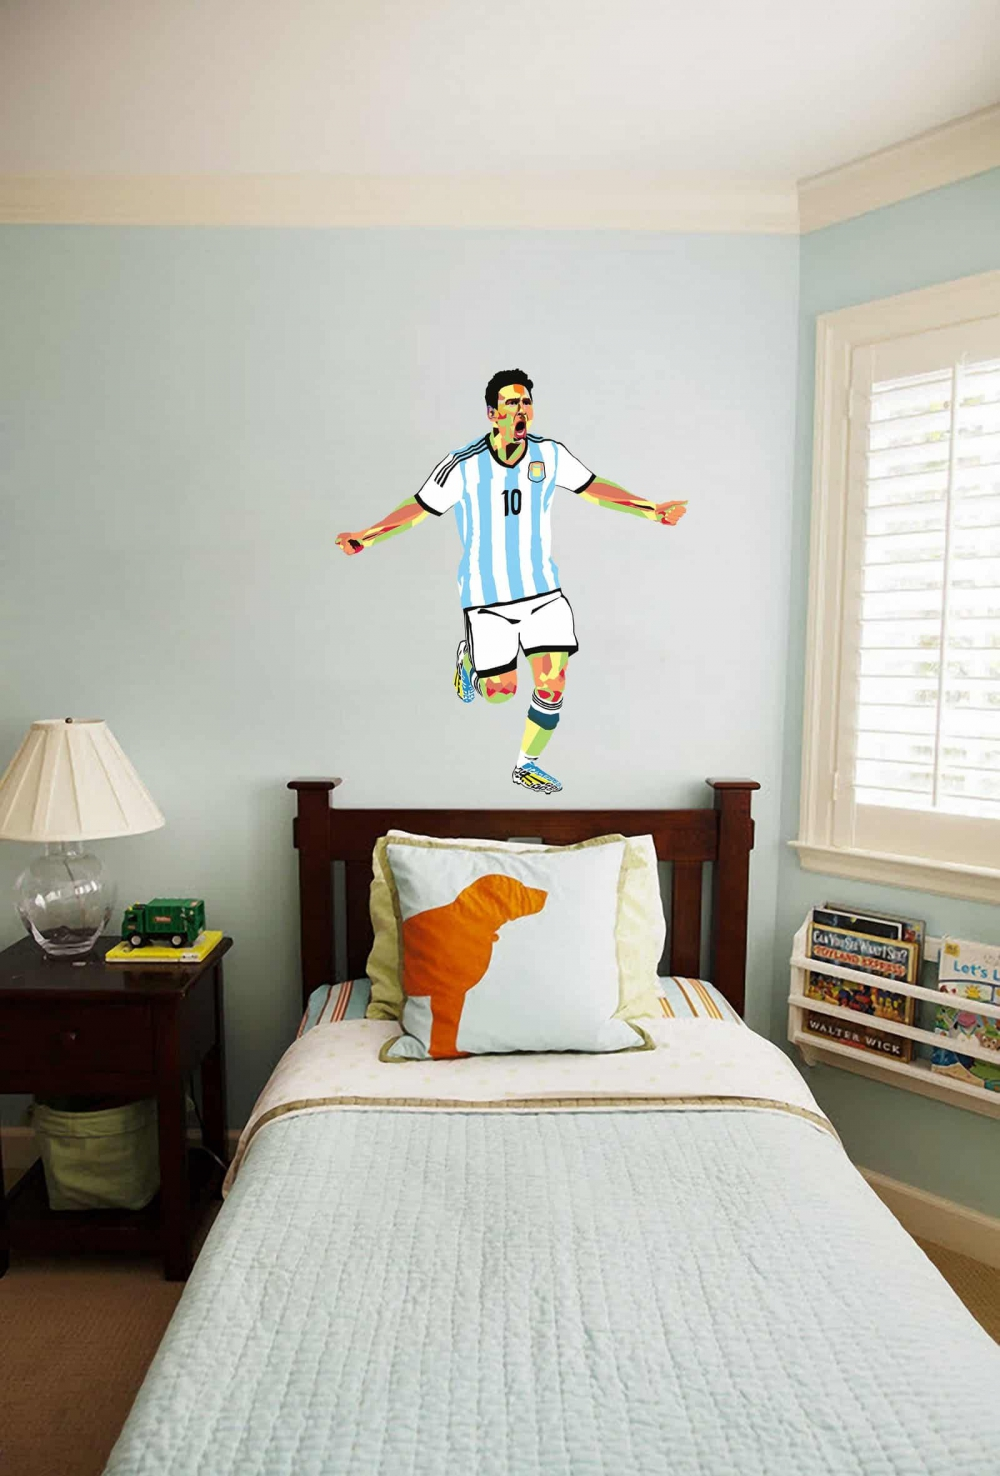 Come on Messi Teen room decal